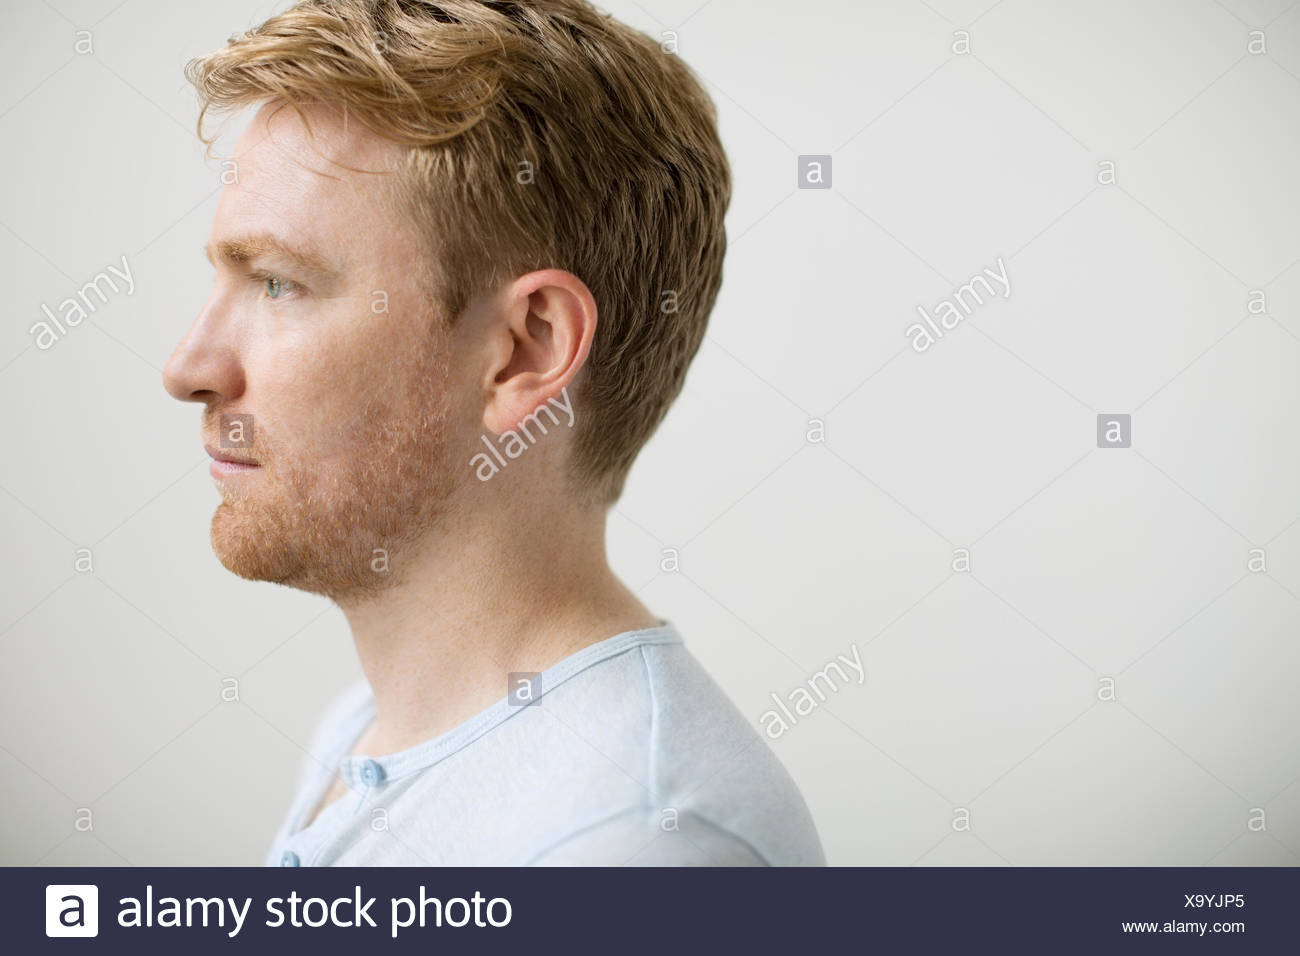 profile of man with strawberry blonde hair stock photo 281505229